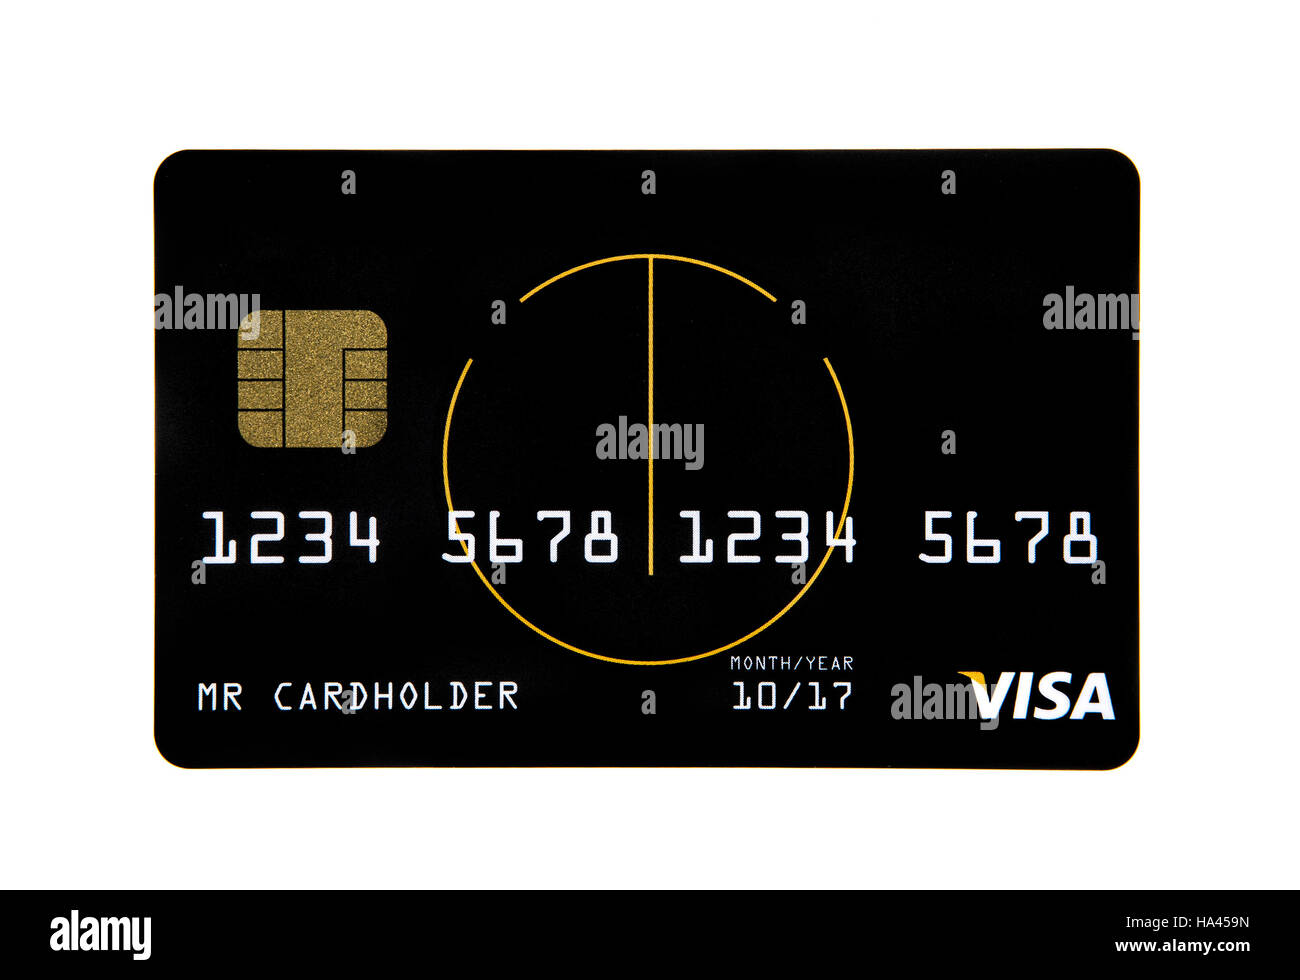 Visa credit card with a smart chip  on a white background - Stock Image